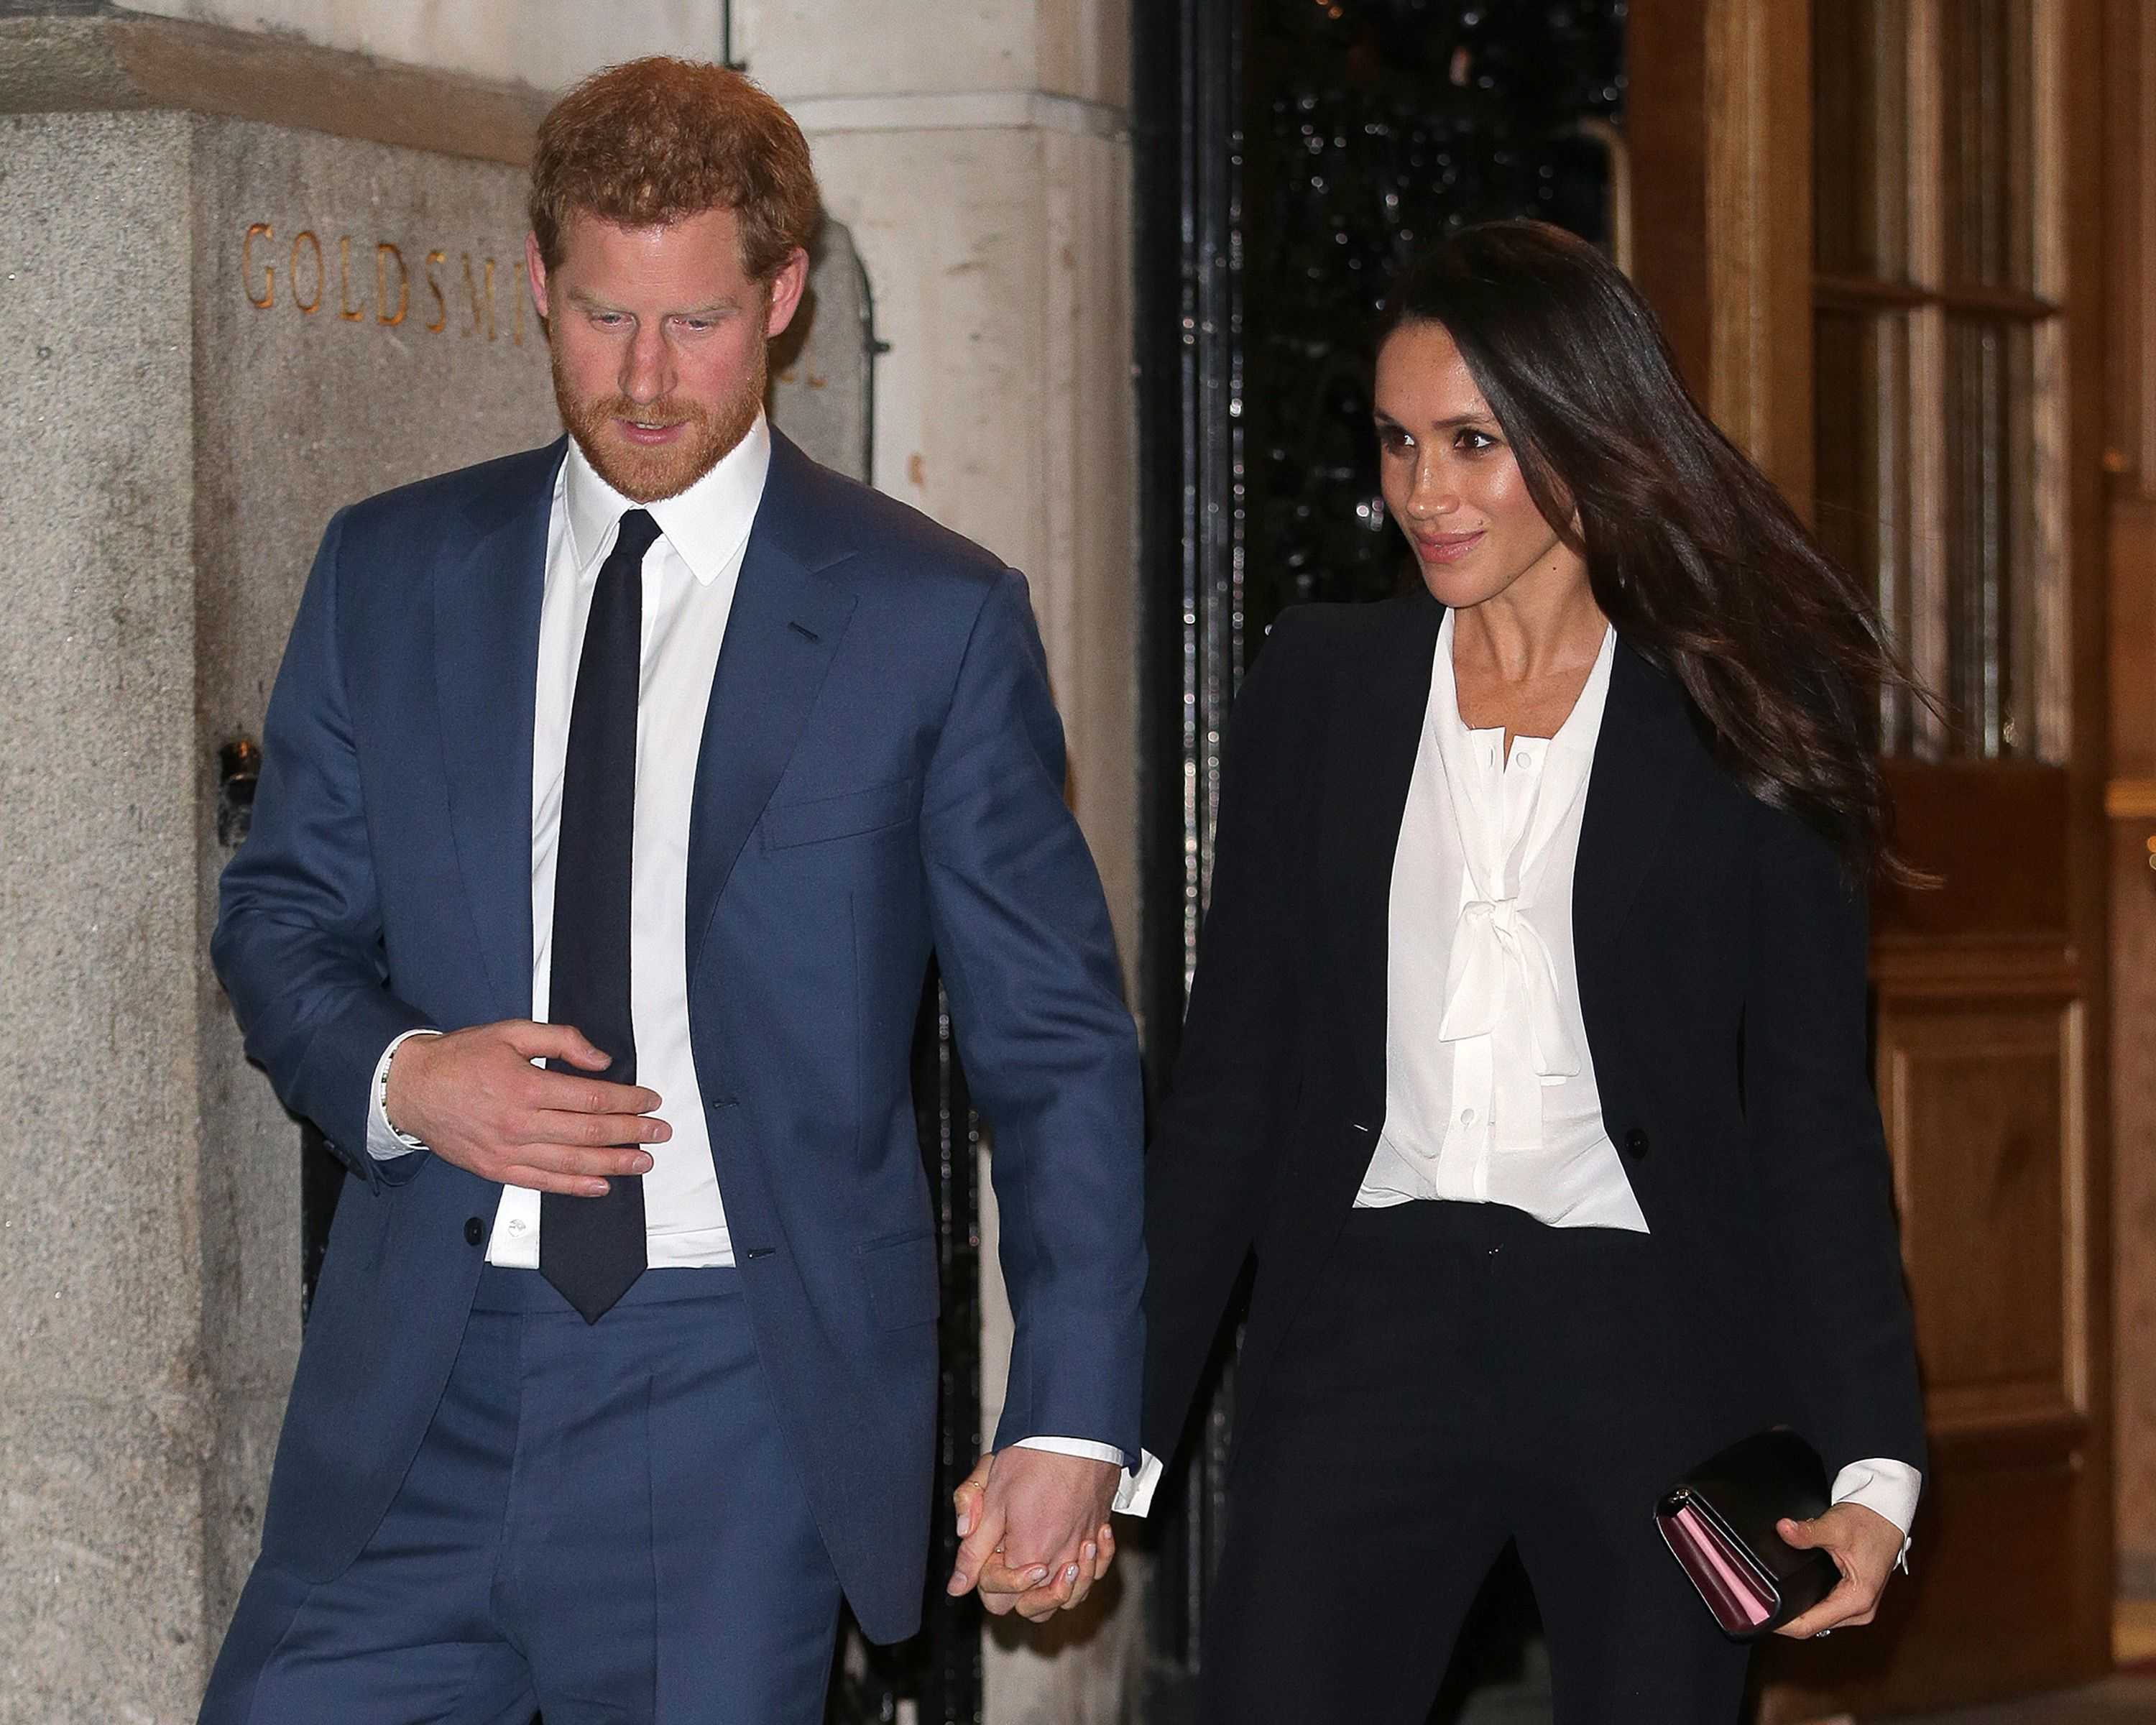 Meghan Markle's Bodysuit From Jewish Brand Sold Out – The Forward